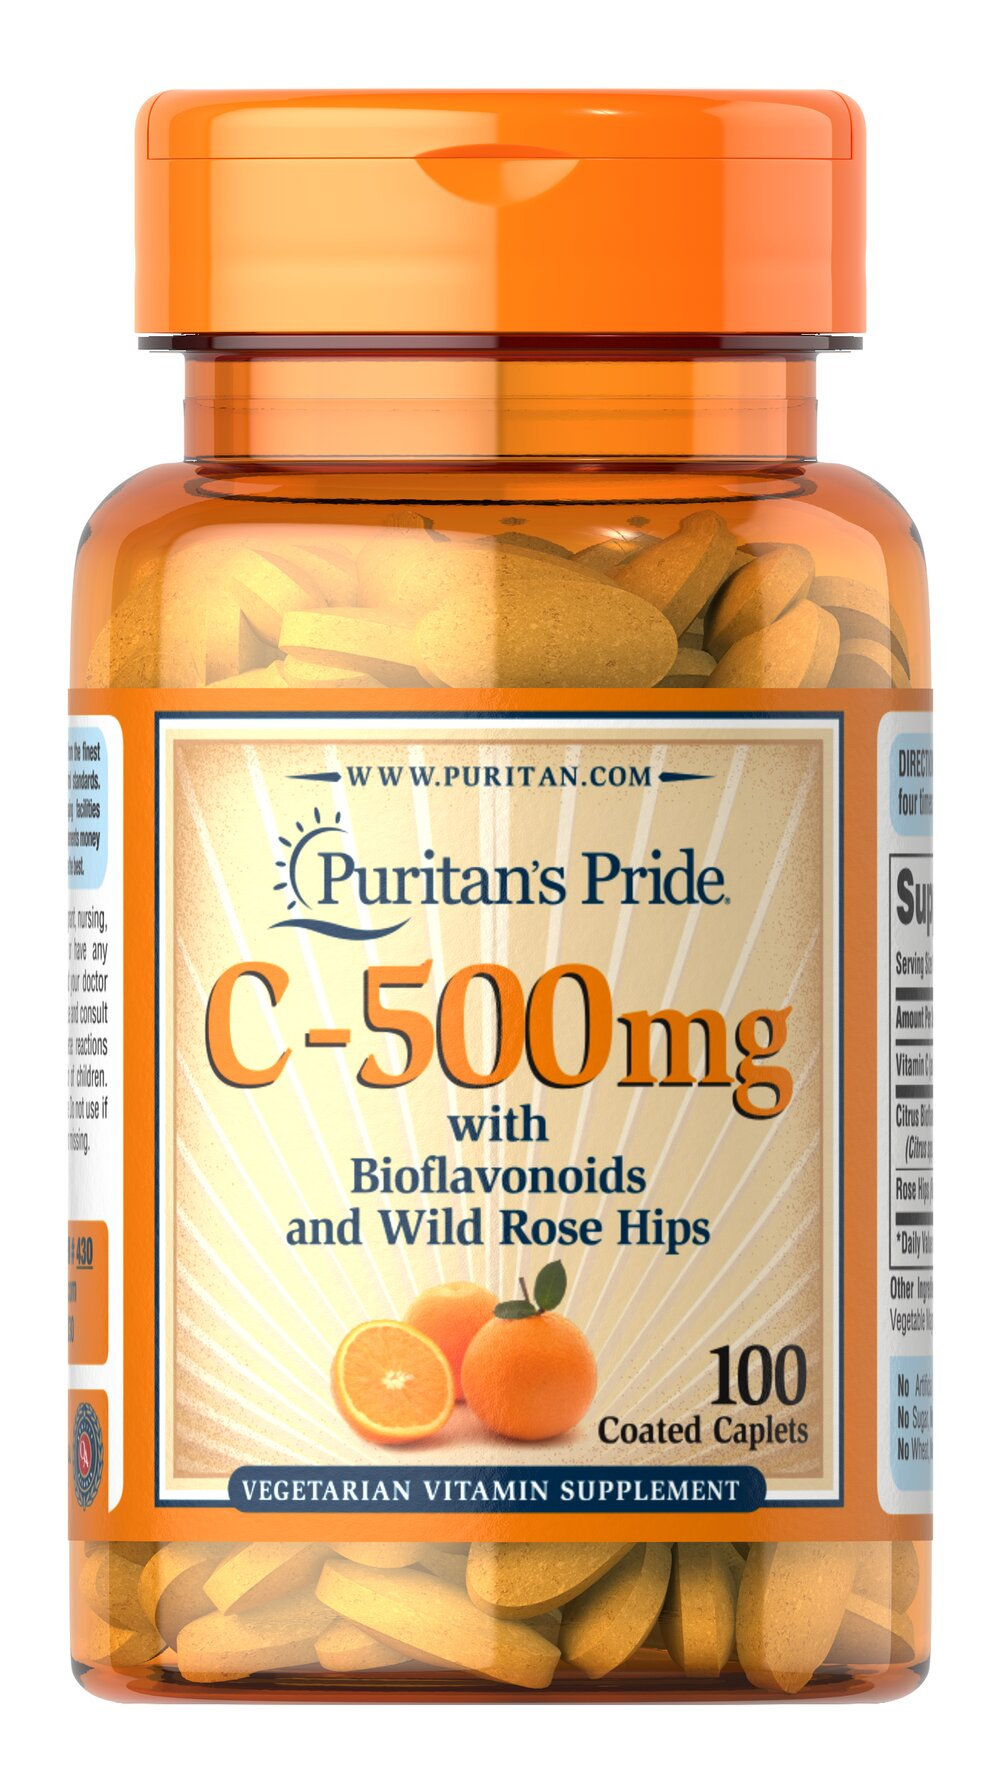 Vitamin C-500 mg with Bioflavonoids & Rose Hips <p>Vitamin C  is essential to many functions in the body and is one of the leading vitamins for immune support and helps fight cell-damaging free radicals.**   Our product also includes Rose Hips, which help the body absorb and utilize Vitamin C.**</p><p>Offers superior antioxidant support.**</p><p>Good oral health is linked to cardiovascular health. Vitamin C helps to support both healthy gums and circulatory heal